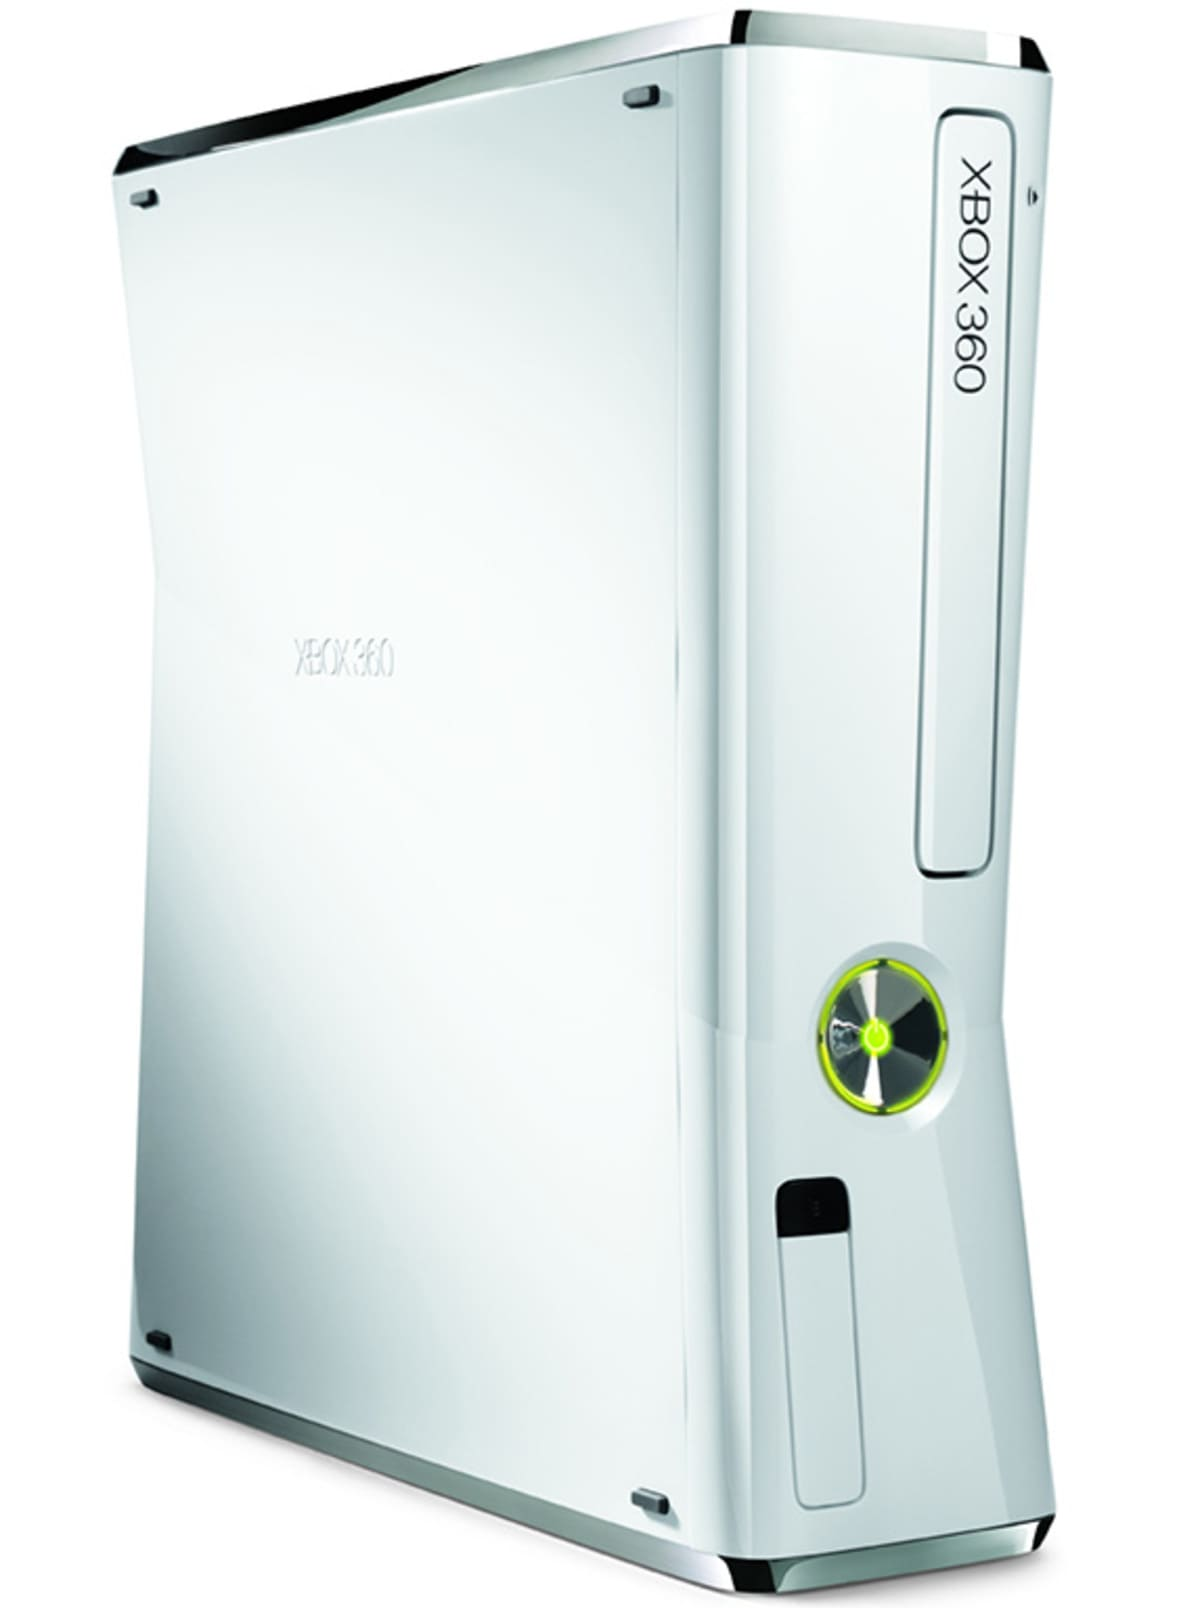 Xbox 360 y Kinect en color blanco 2 1